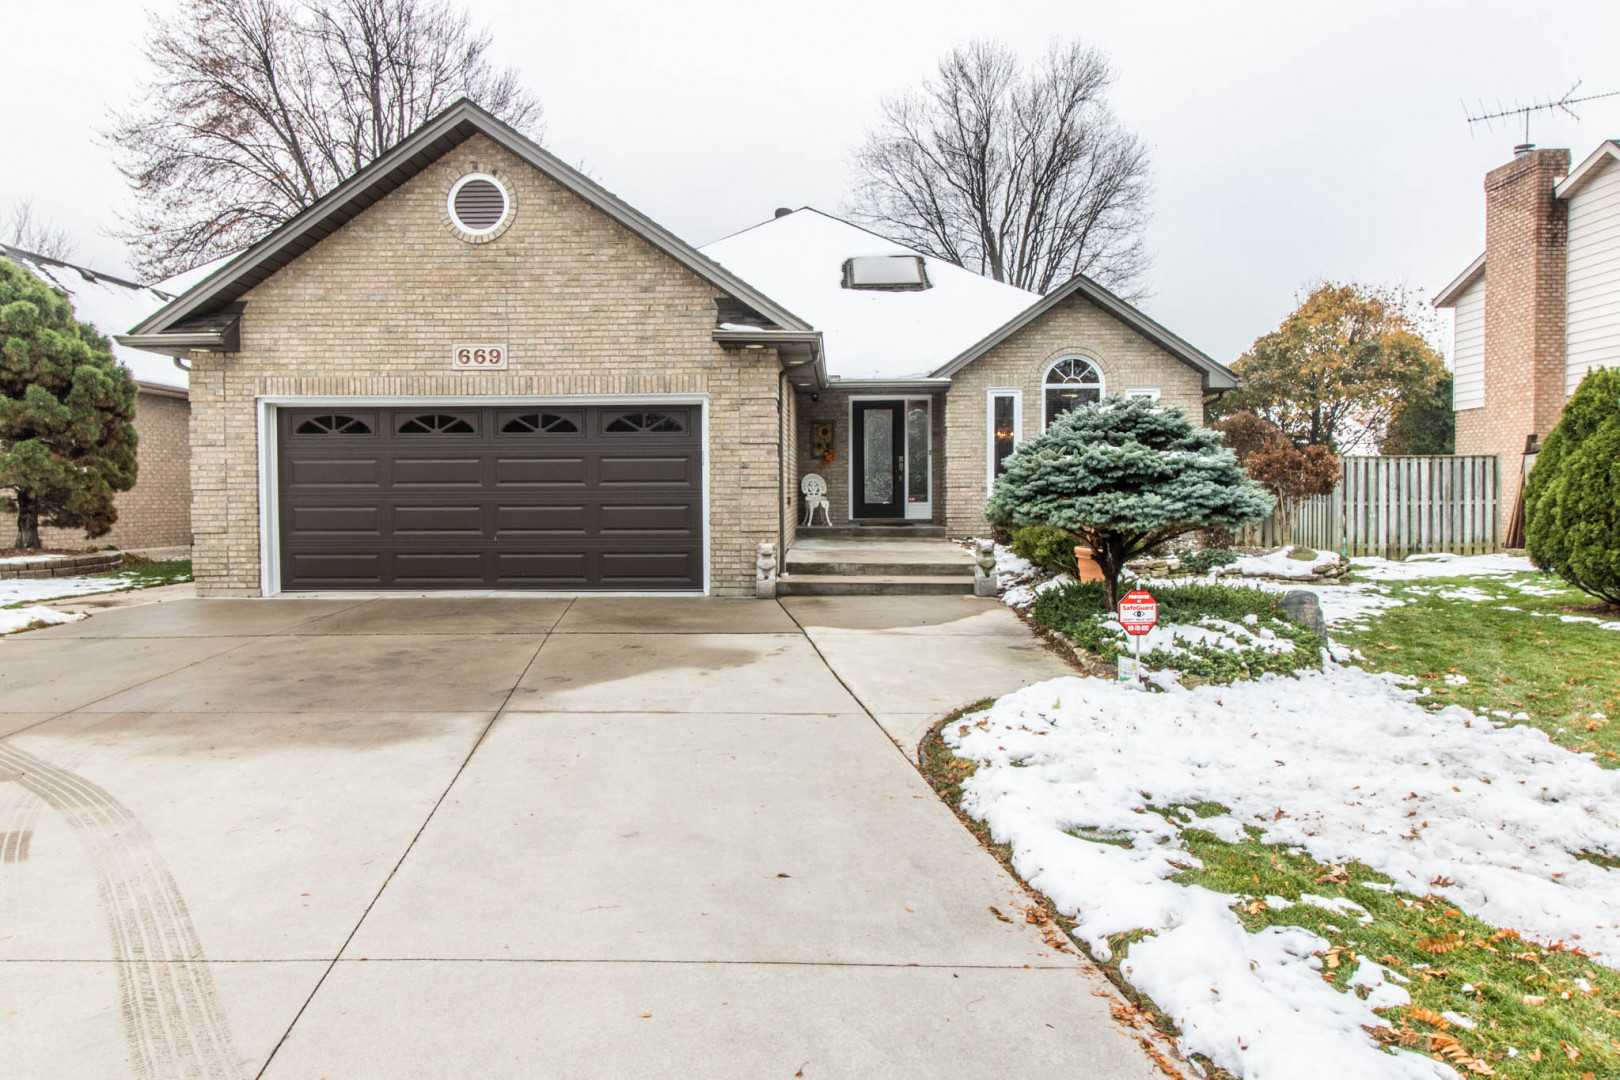 669 Old Tecumseh Rd, Lakeshore Home For Sale!